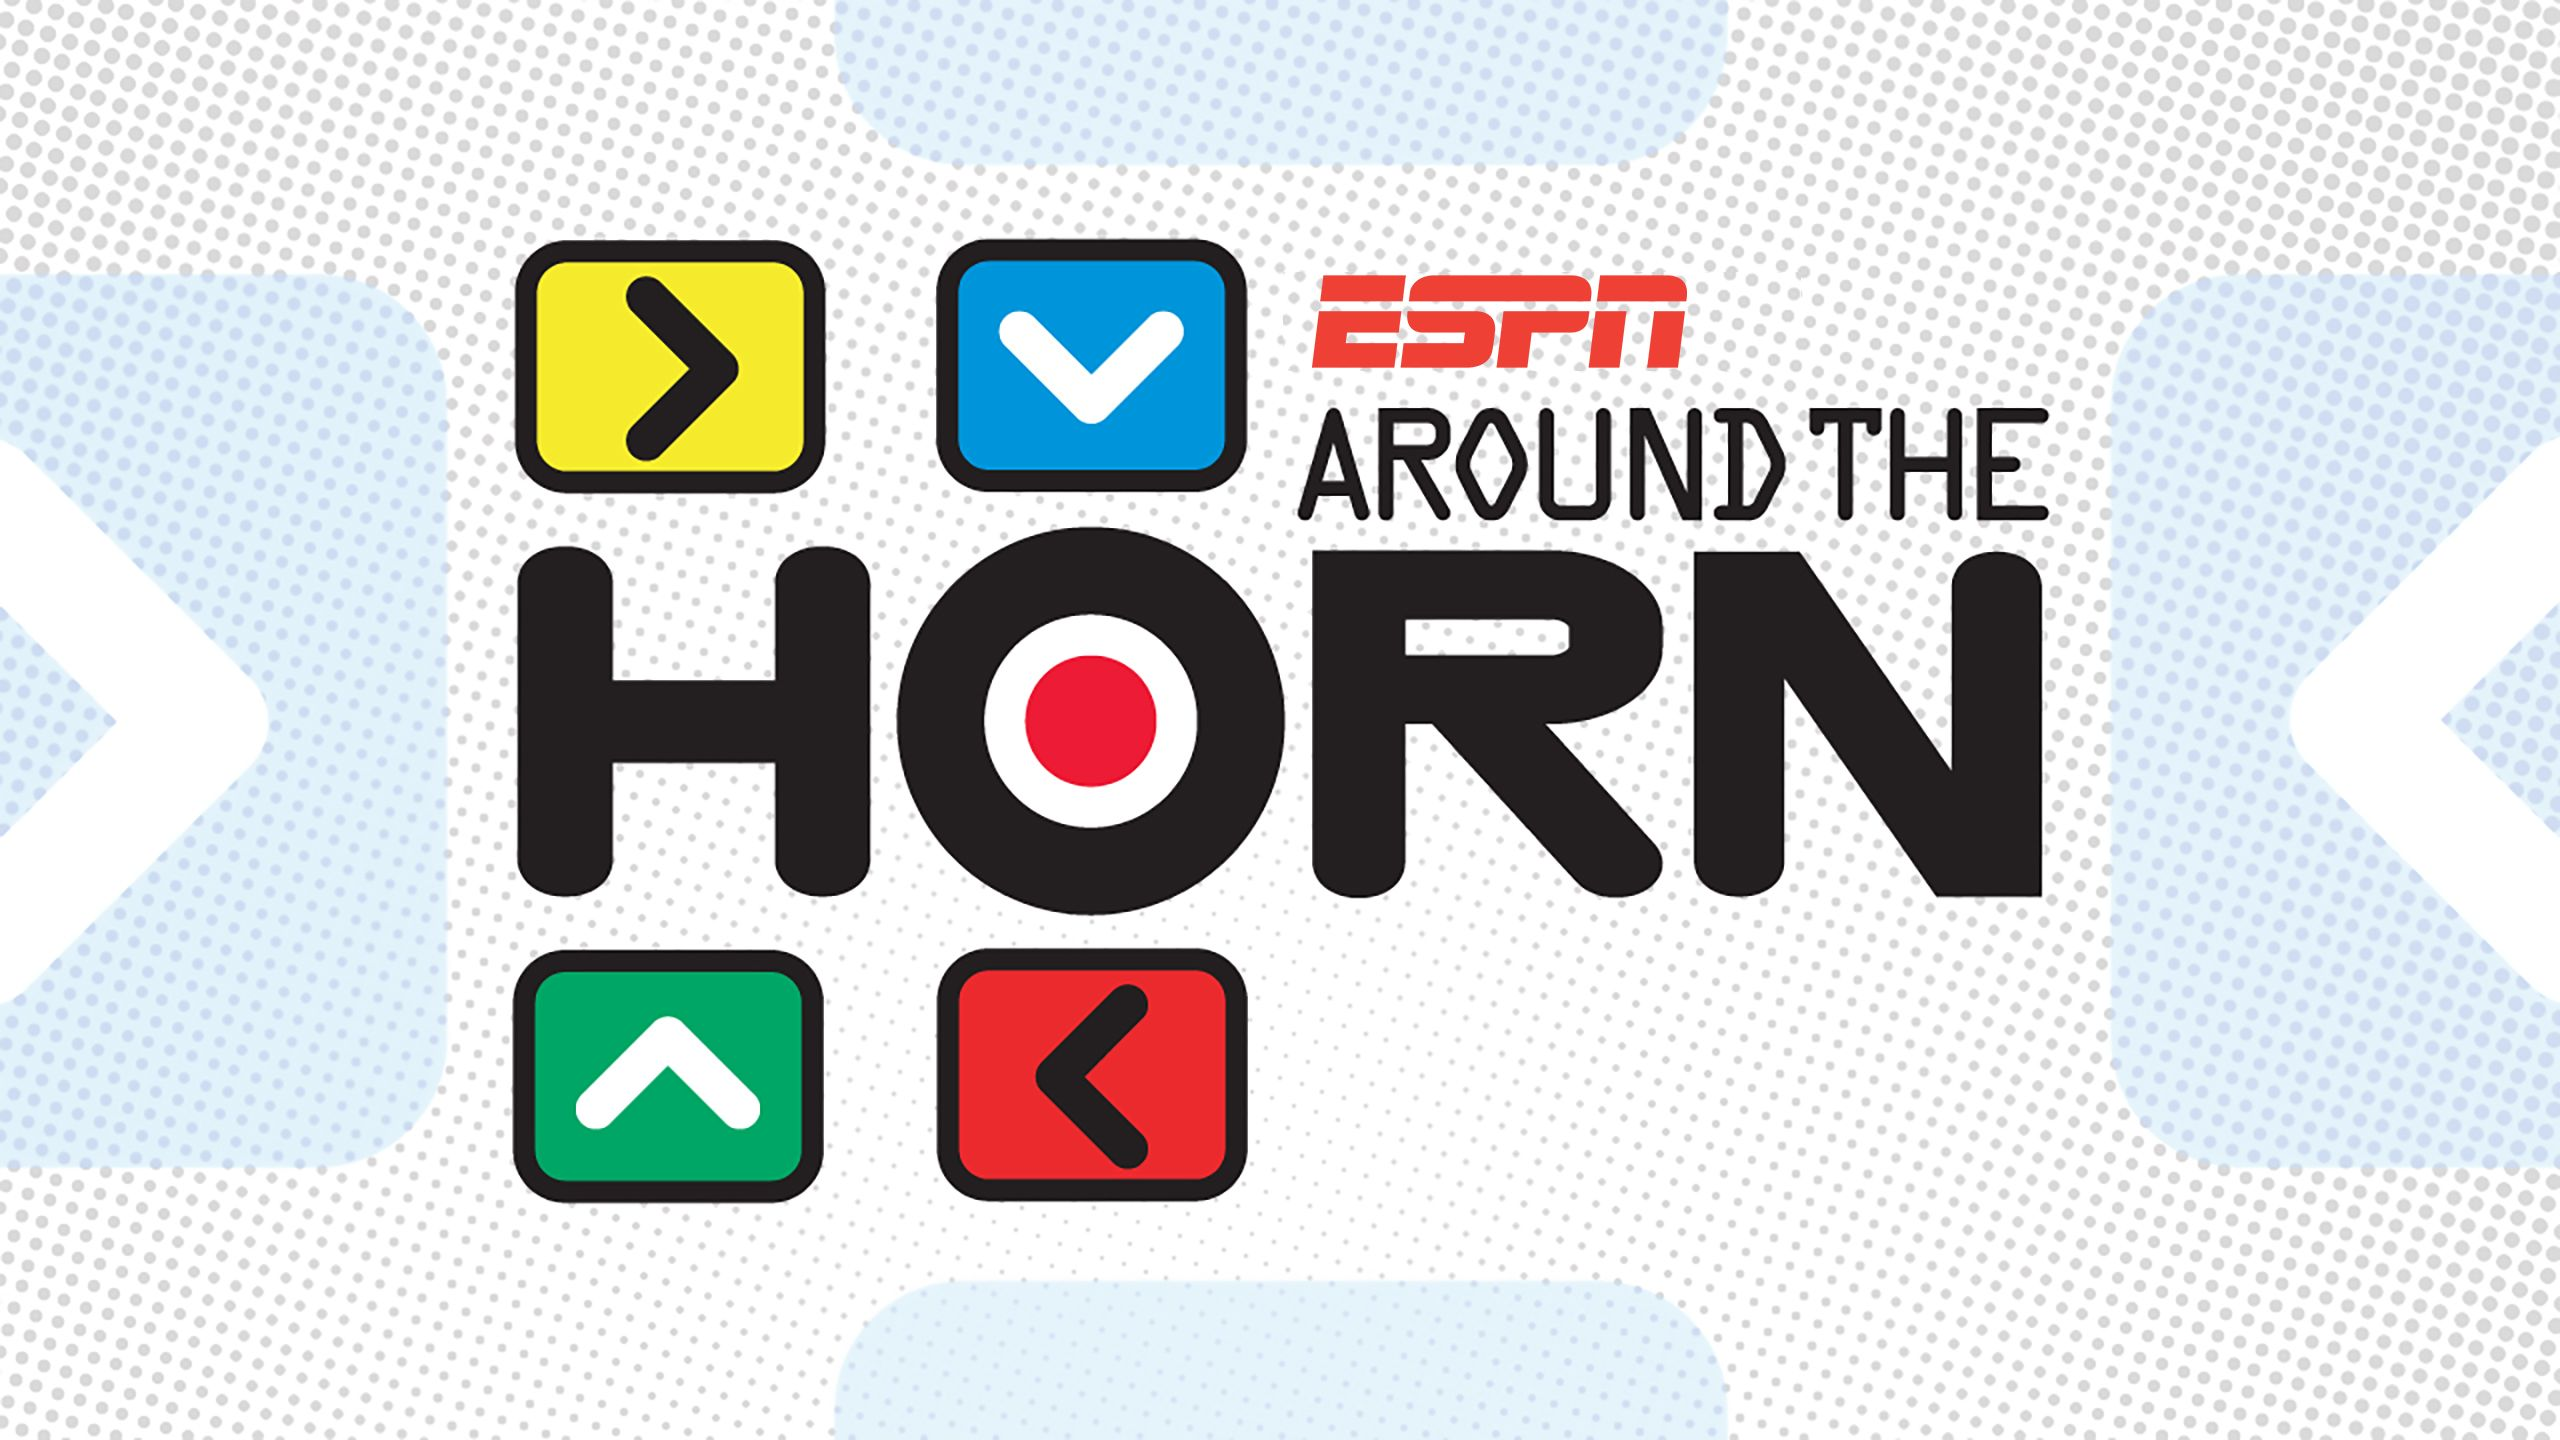 Fri, 7/20 - Around The Horn